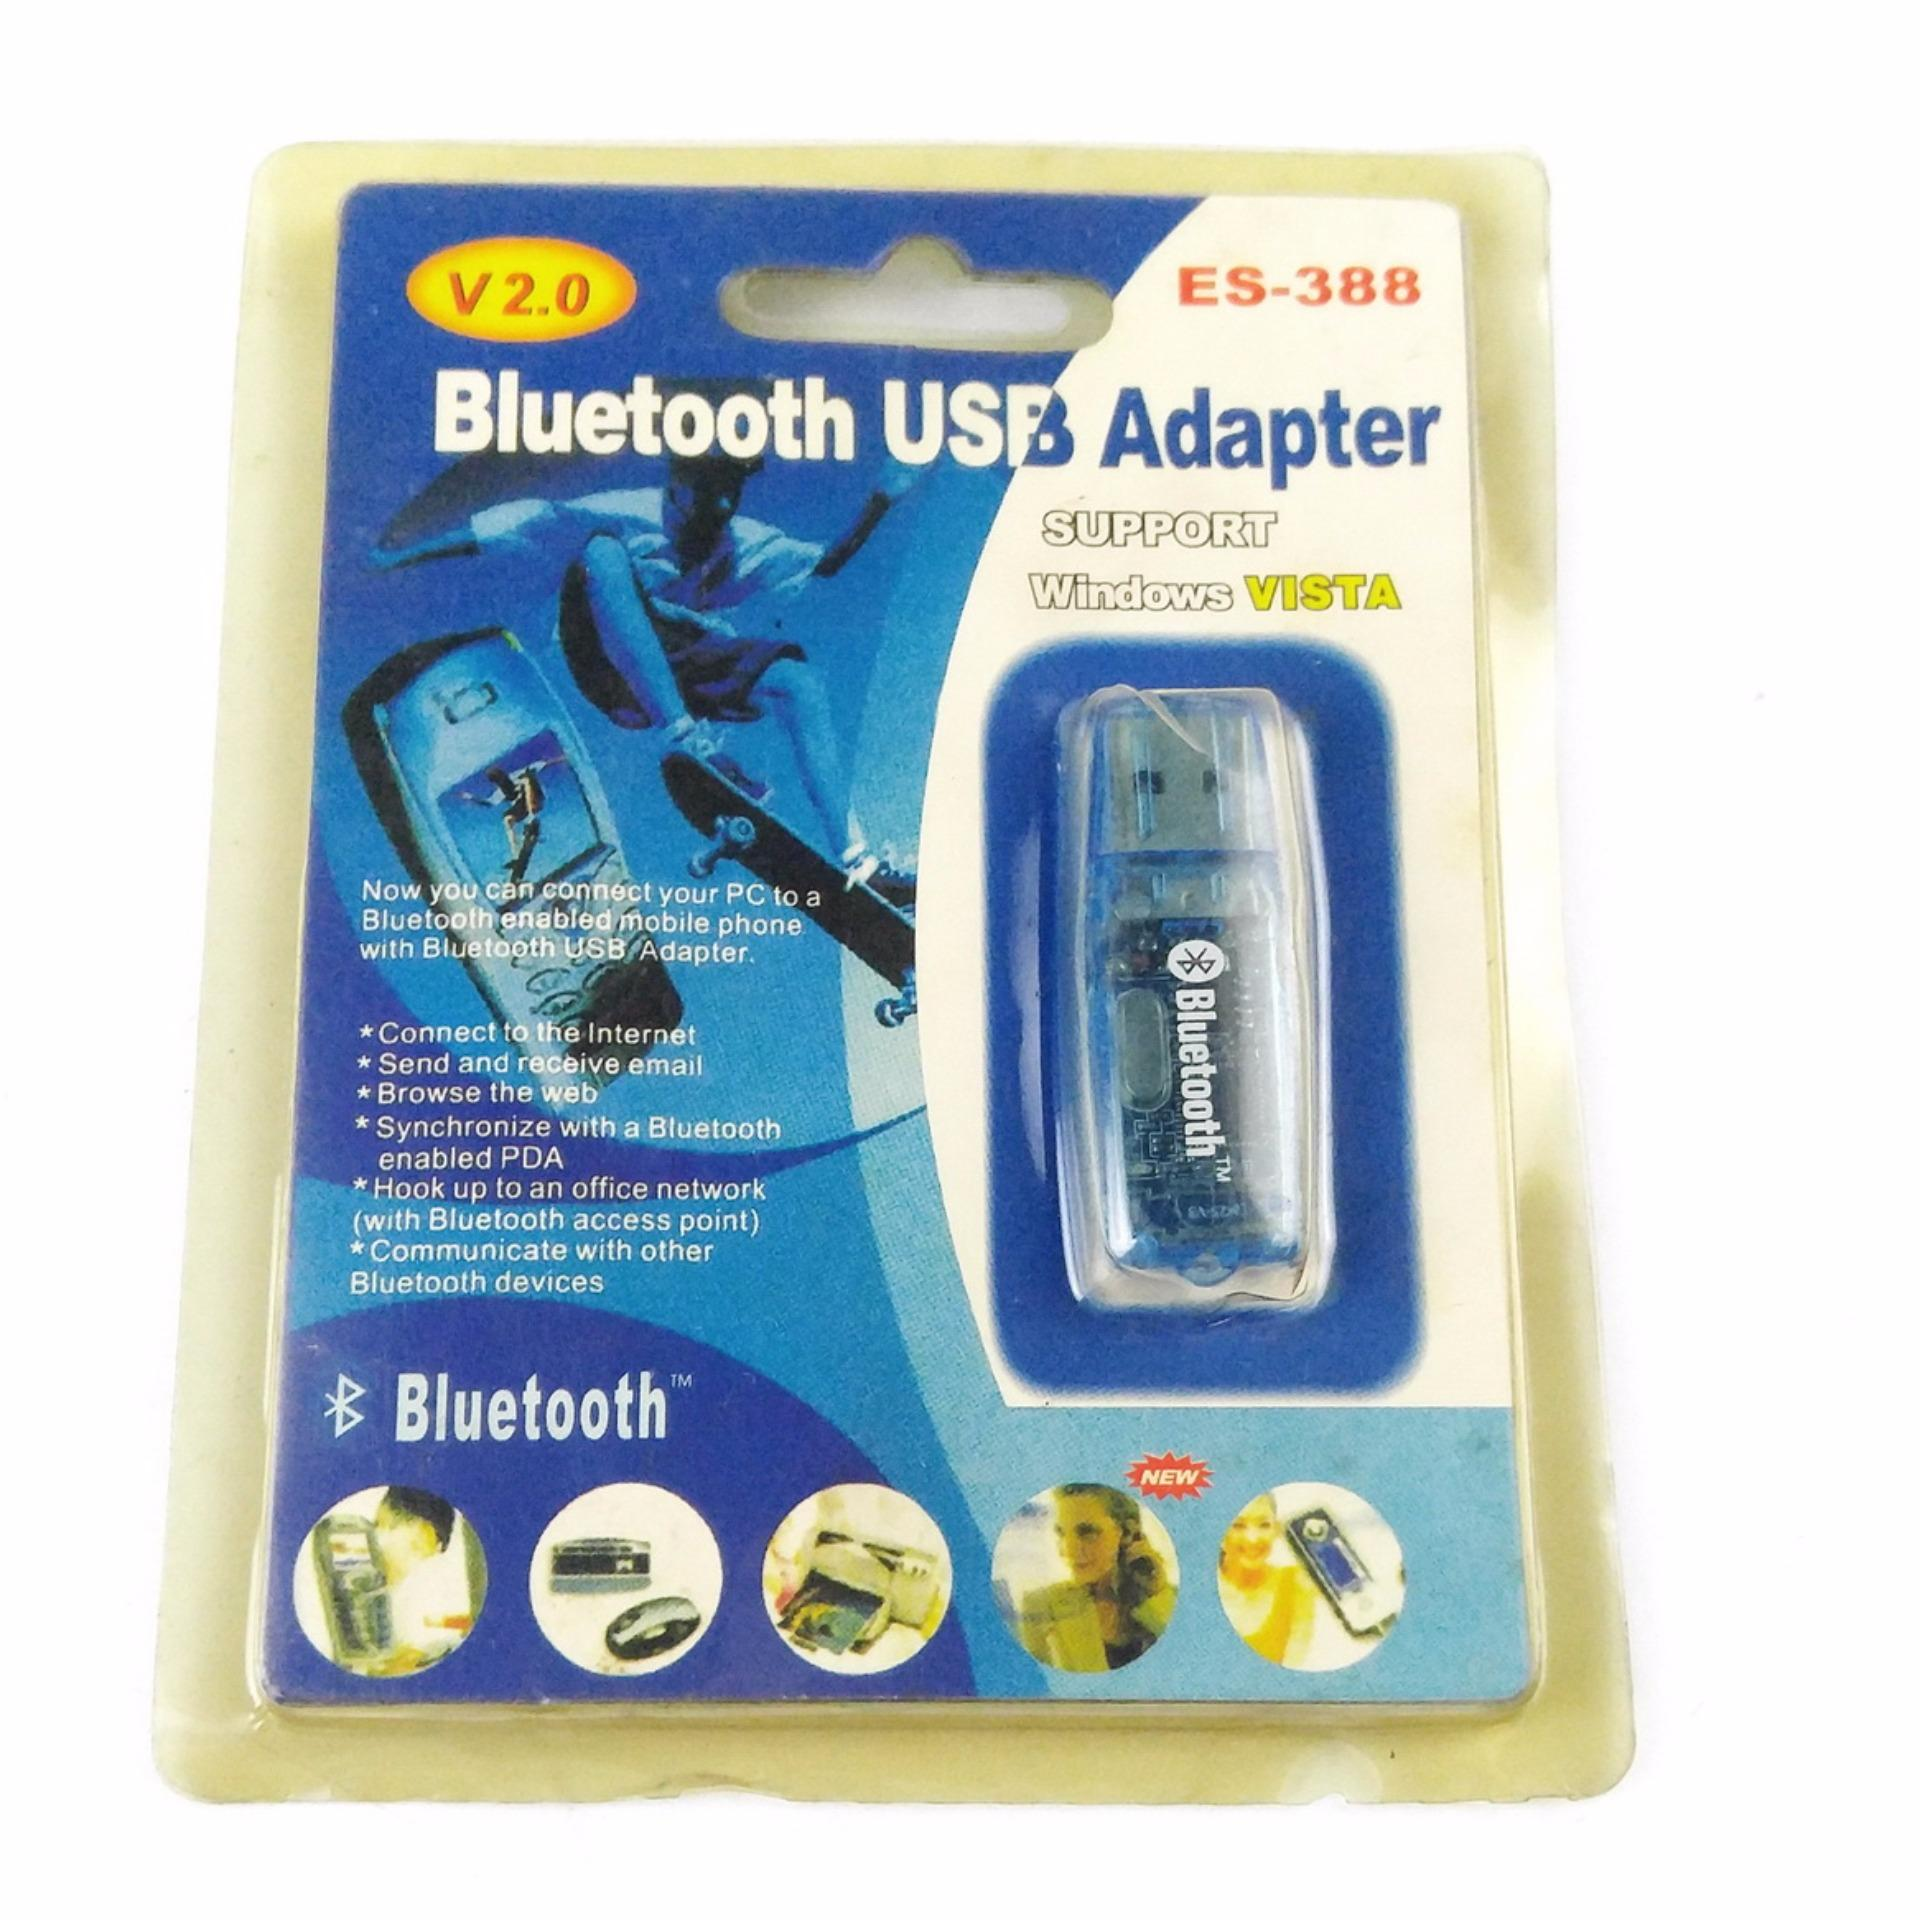 Philippines Es 388 Bluetooth V20 Usb Adapter Search Compare Dongle